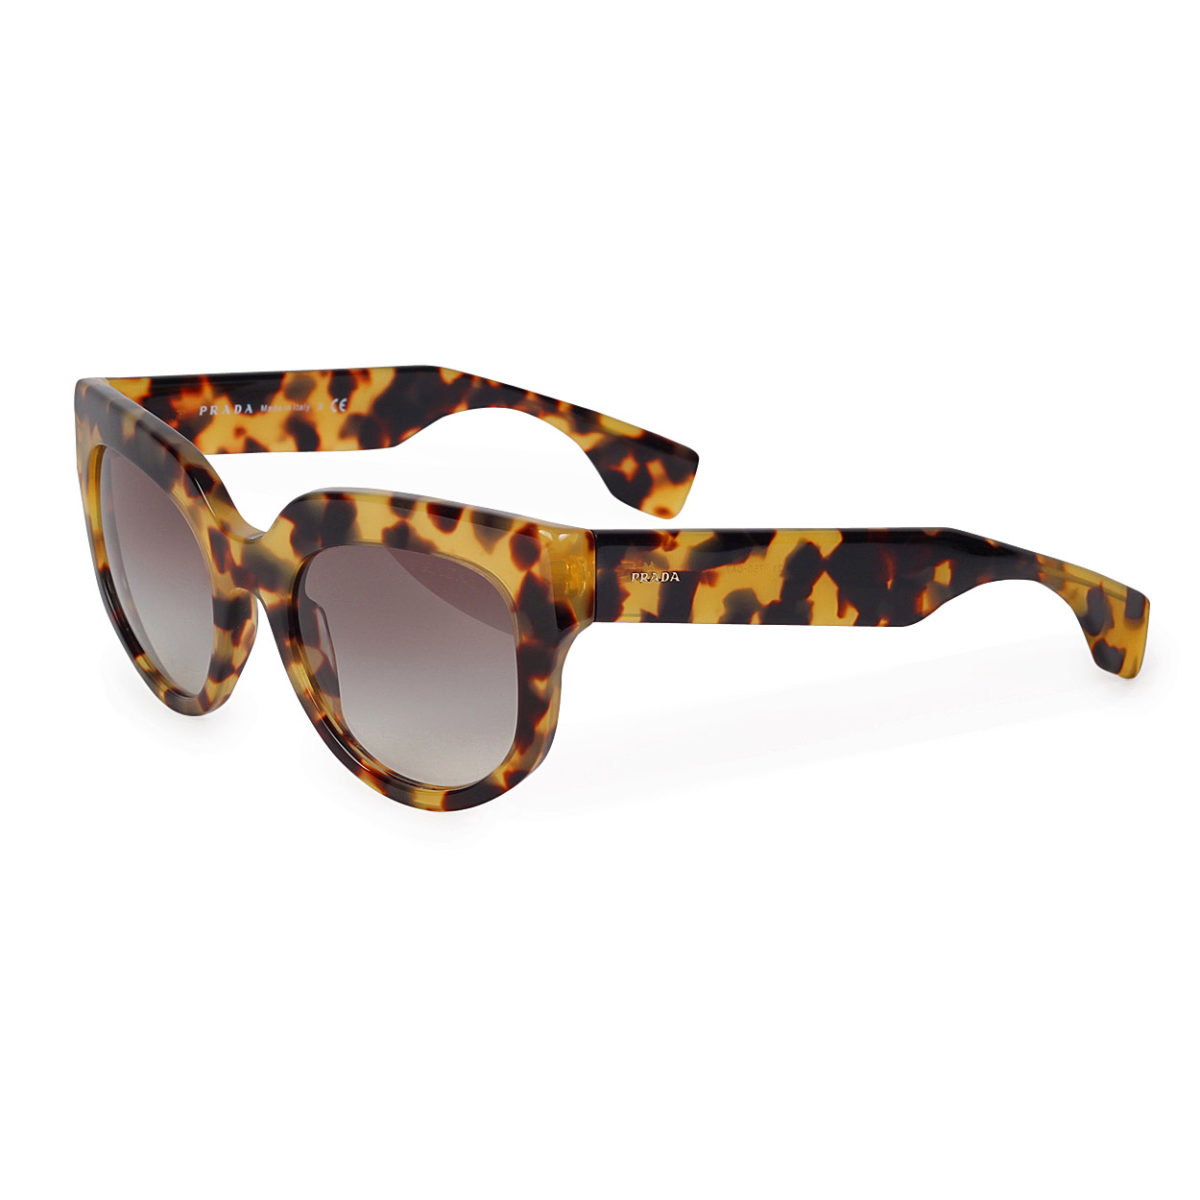 Fendi Black Cat Eye Sunglasses